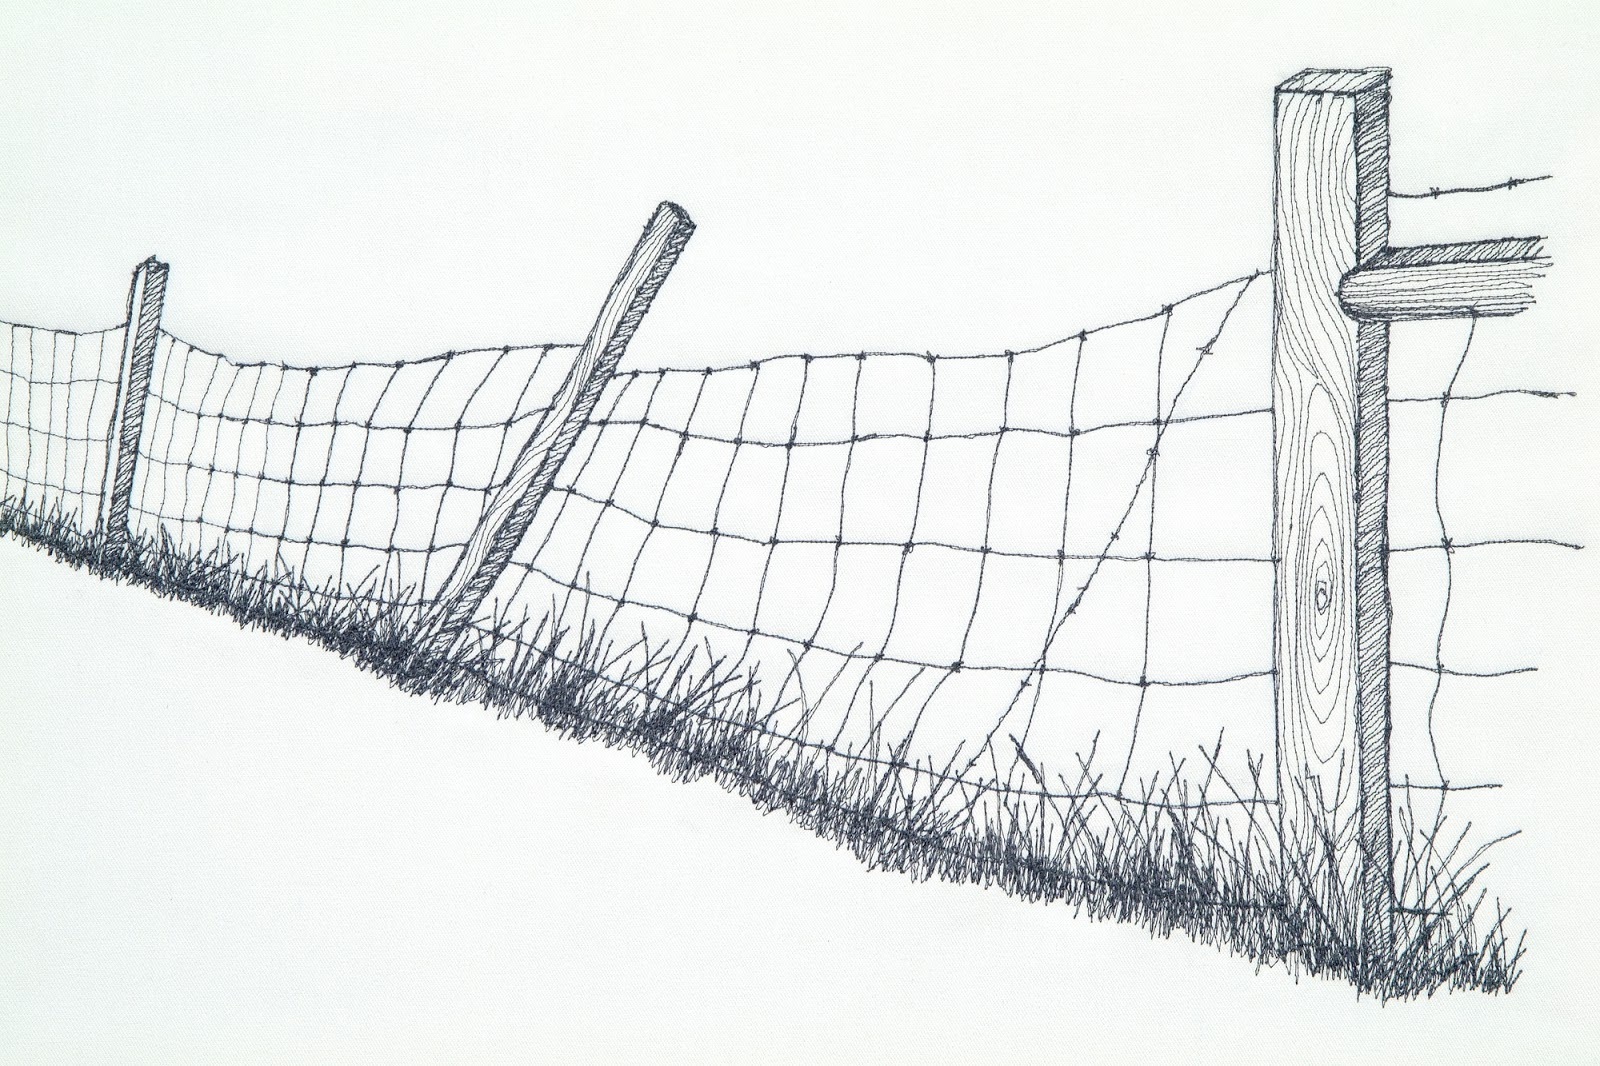 Barbed wire clipart easy. Fence drawing